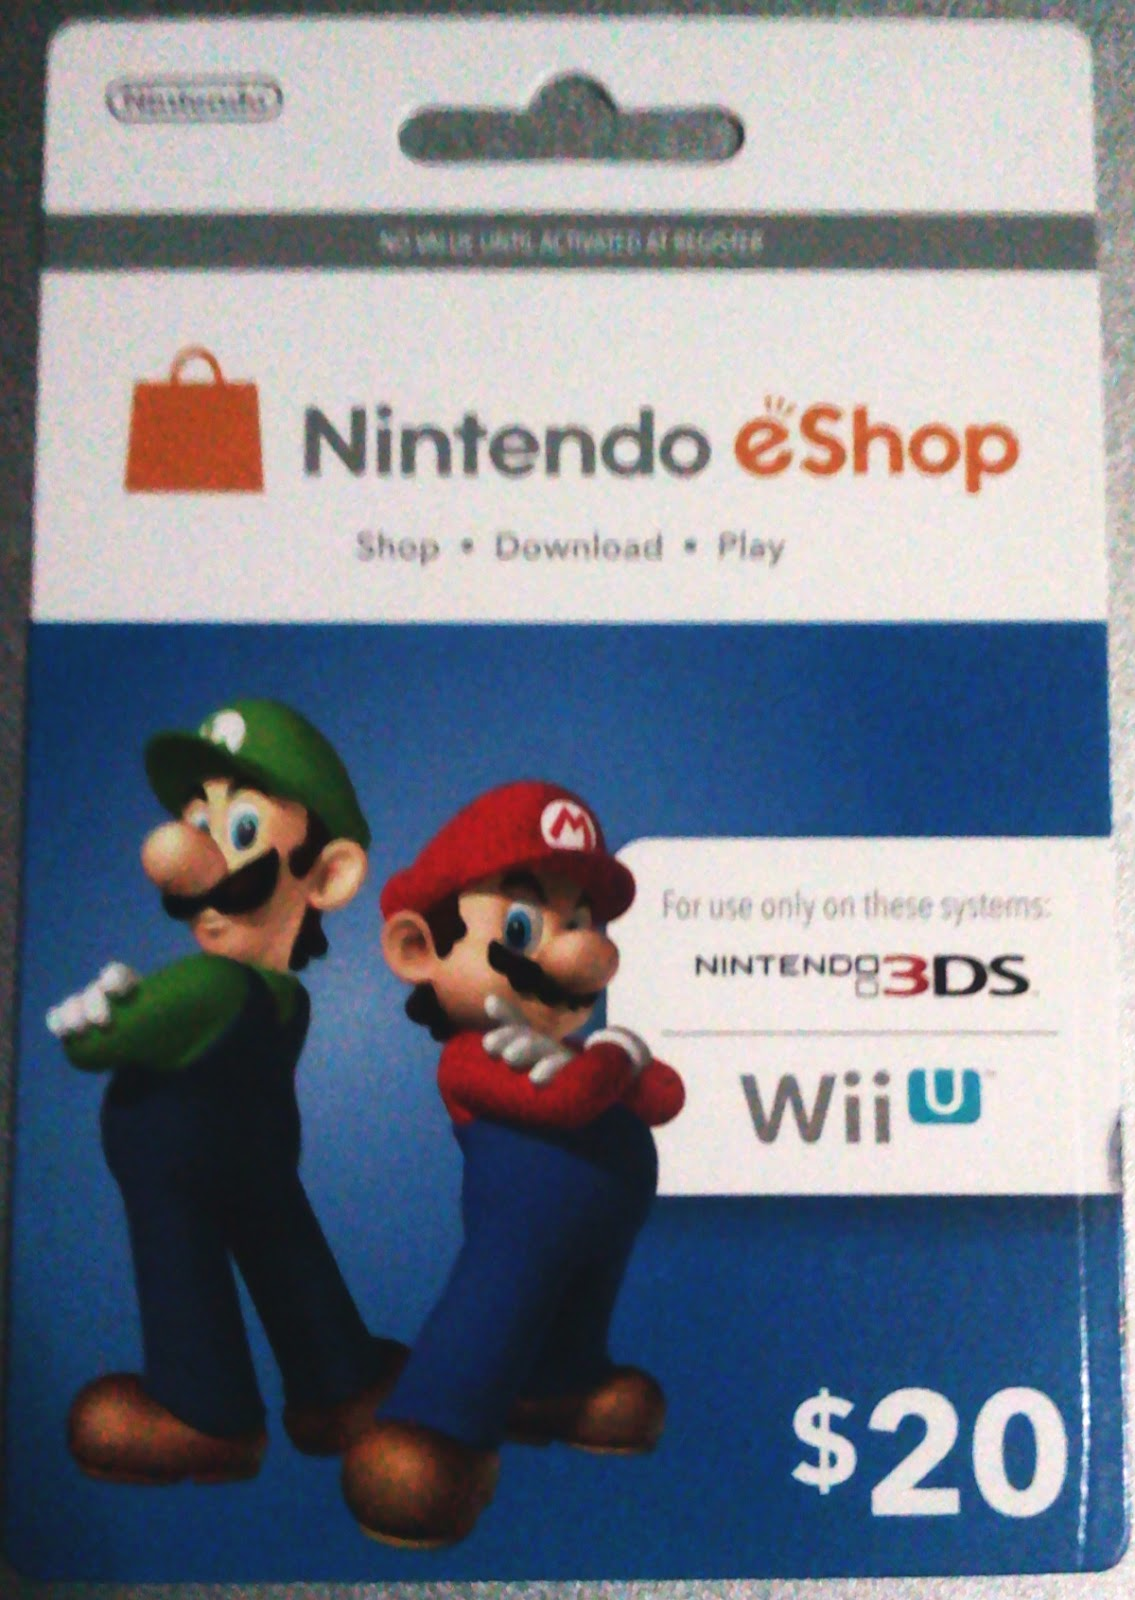 Unused 3ds points card codes - To Add Funds With Nintendo Eshop Prepaid Card On Your Nintendo 3ds Go To Nintendo Eshop Application Once You Re Now Logged In Tap The Menu Button And